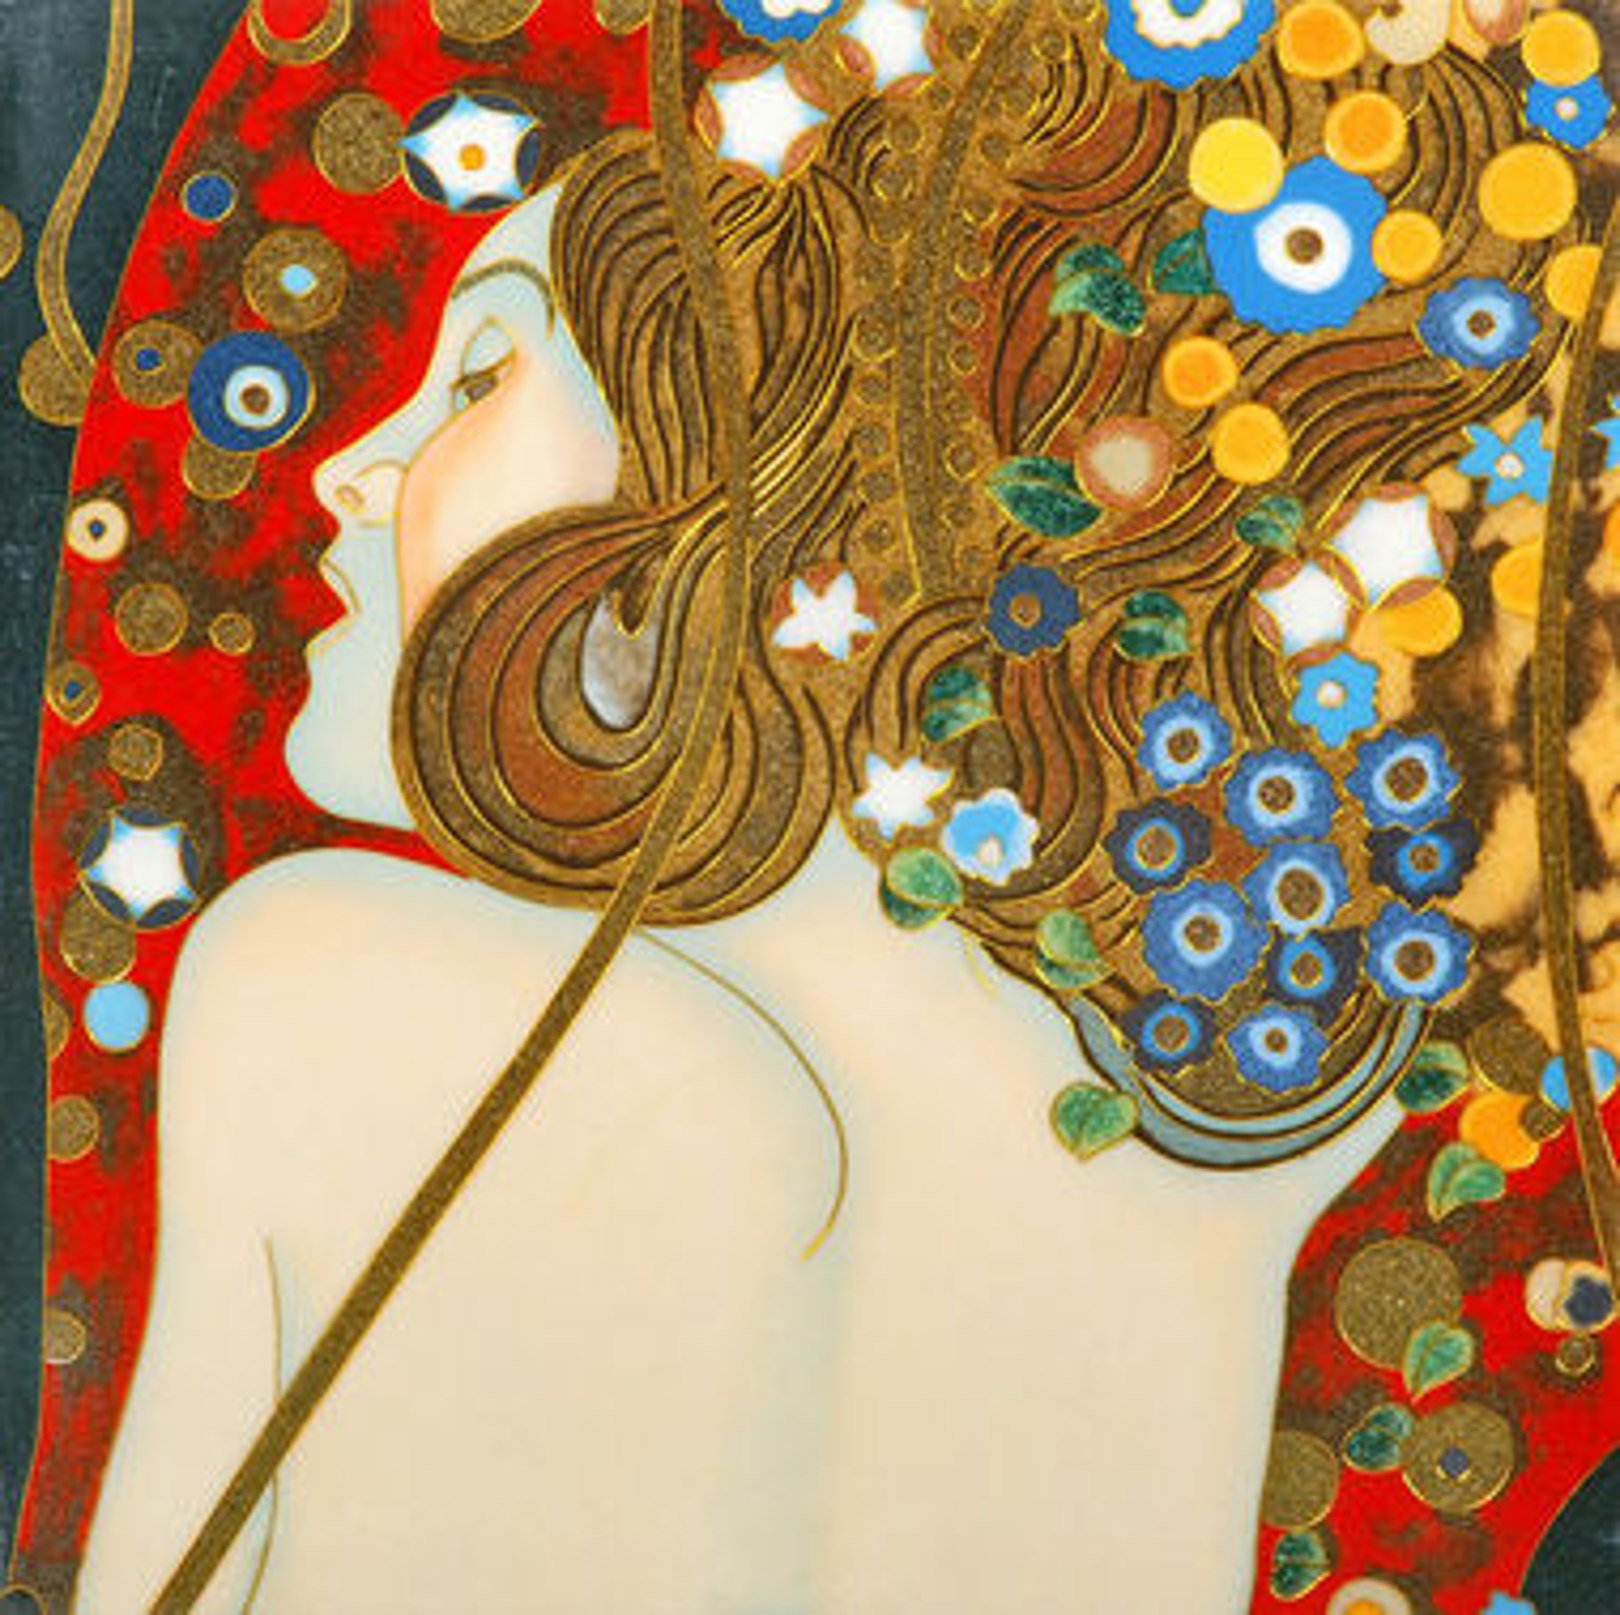 KLIMT Serpente d'Acqua